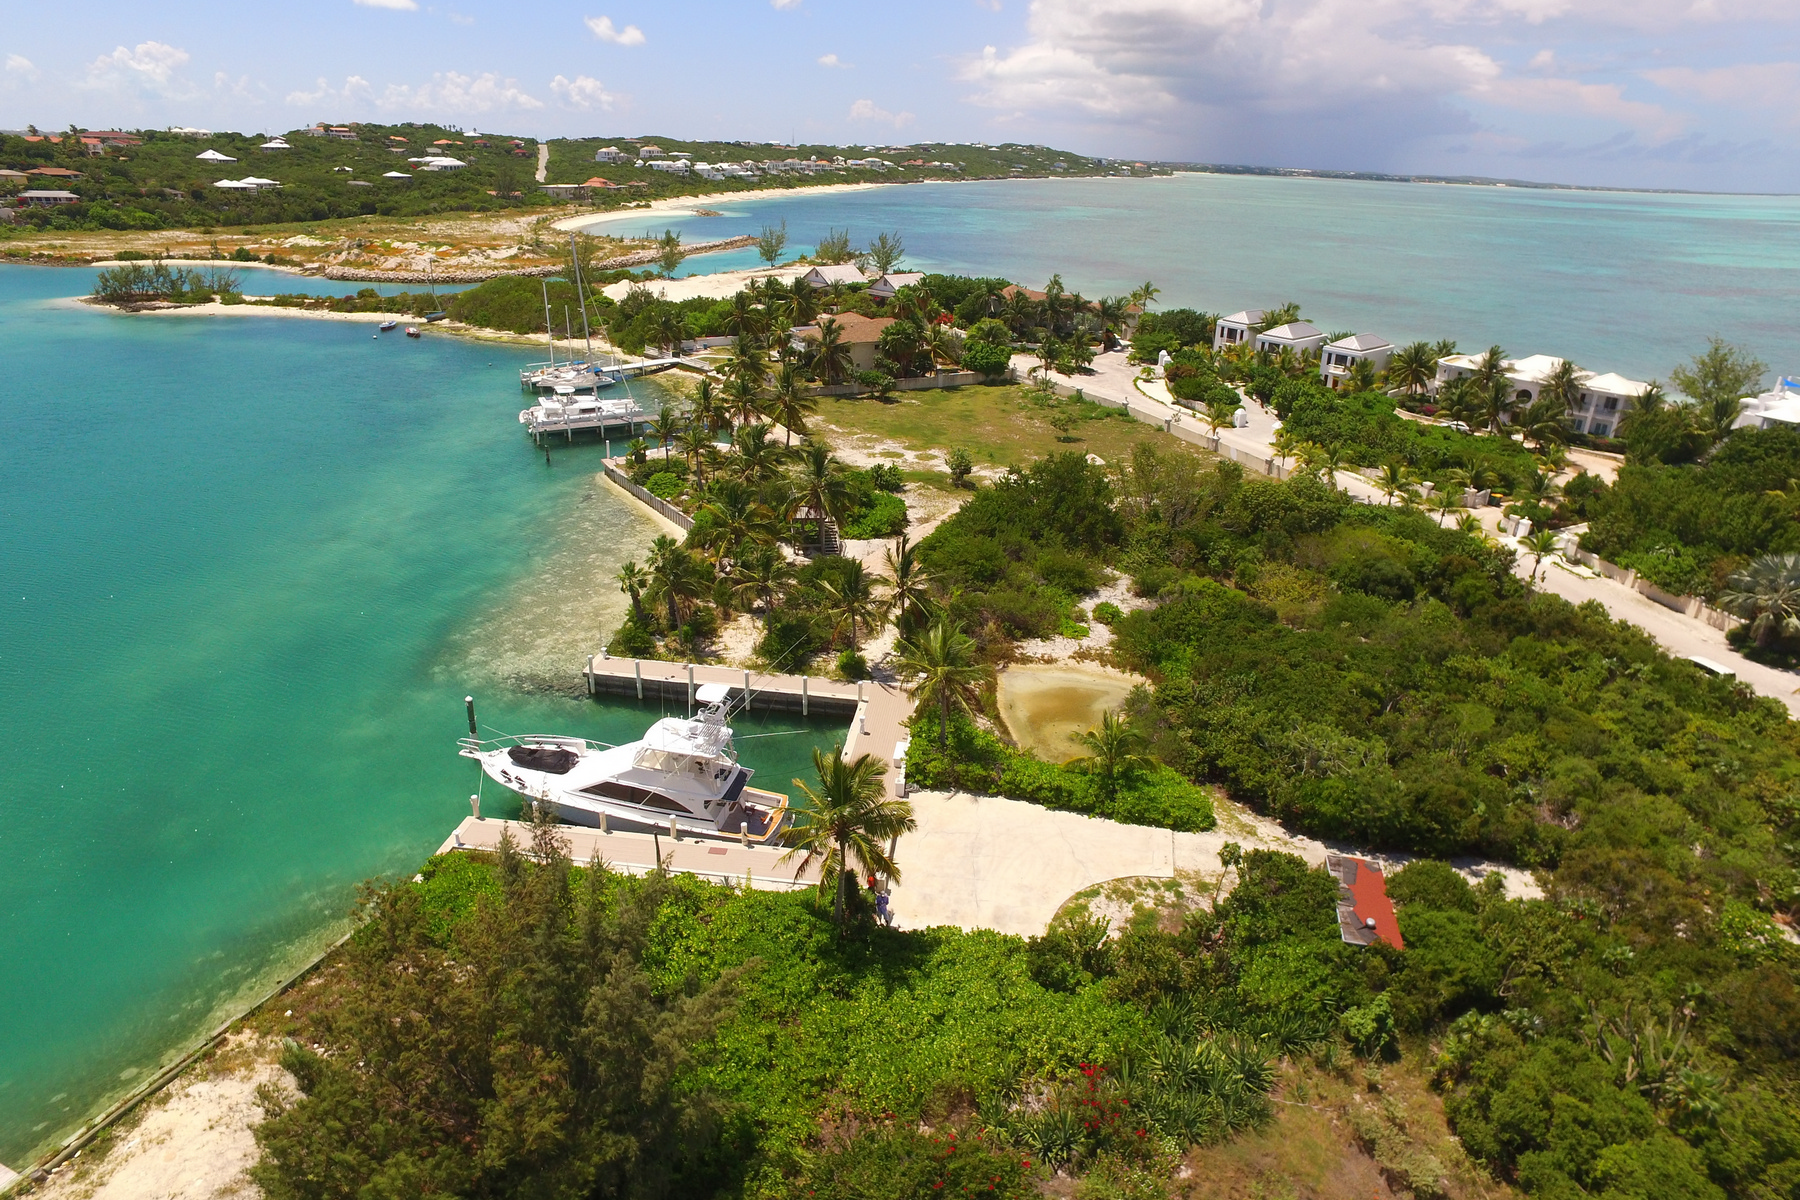 Land for Sale at Turtle Cove Marina Waterfront Turtle Cove, Providenciales, TCI Turks And Caicos Islands